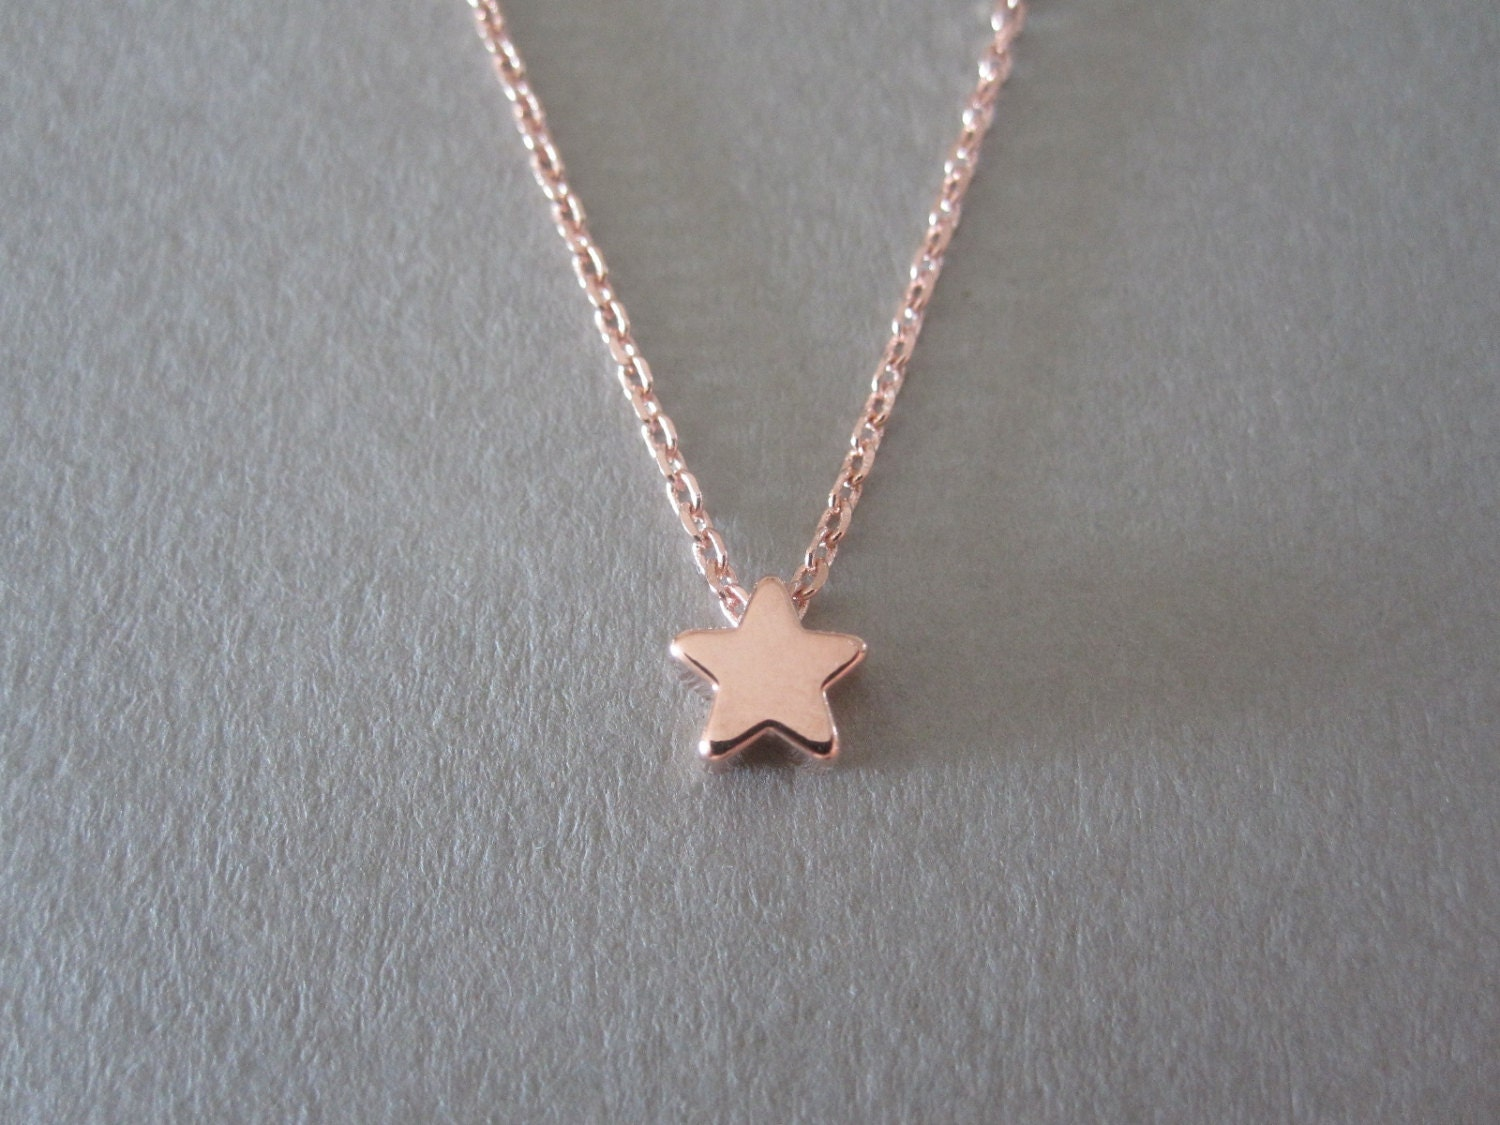 dsc necklaces unique star tiny s products collections jewelry she necklace